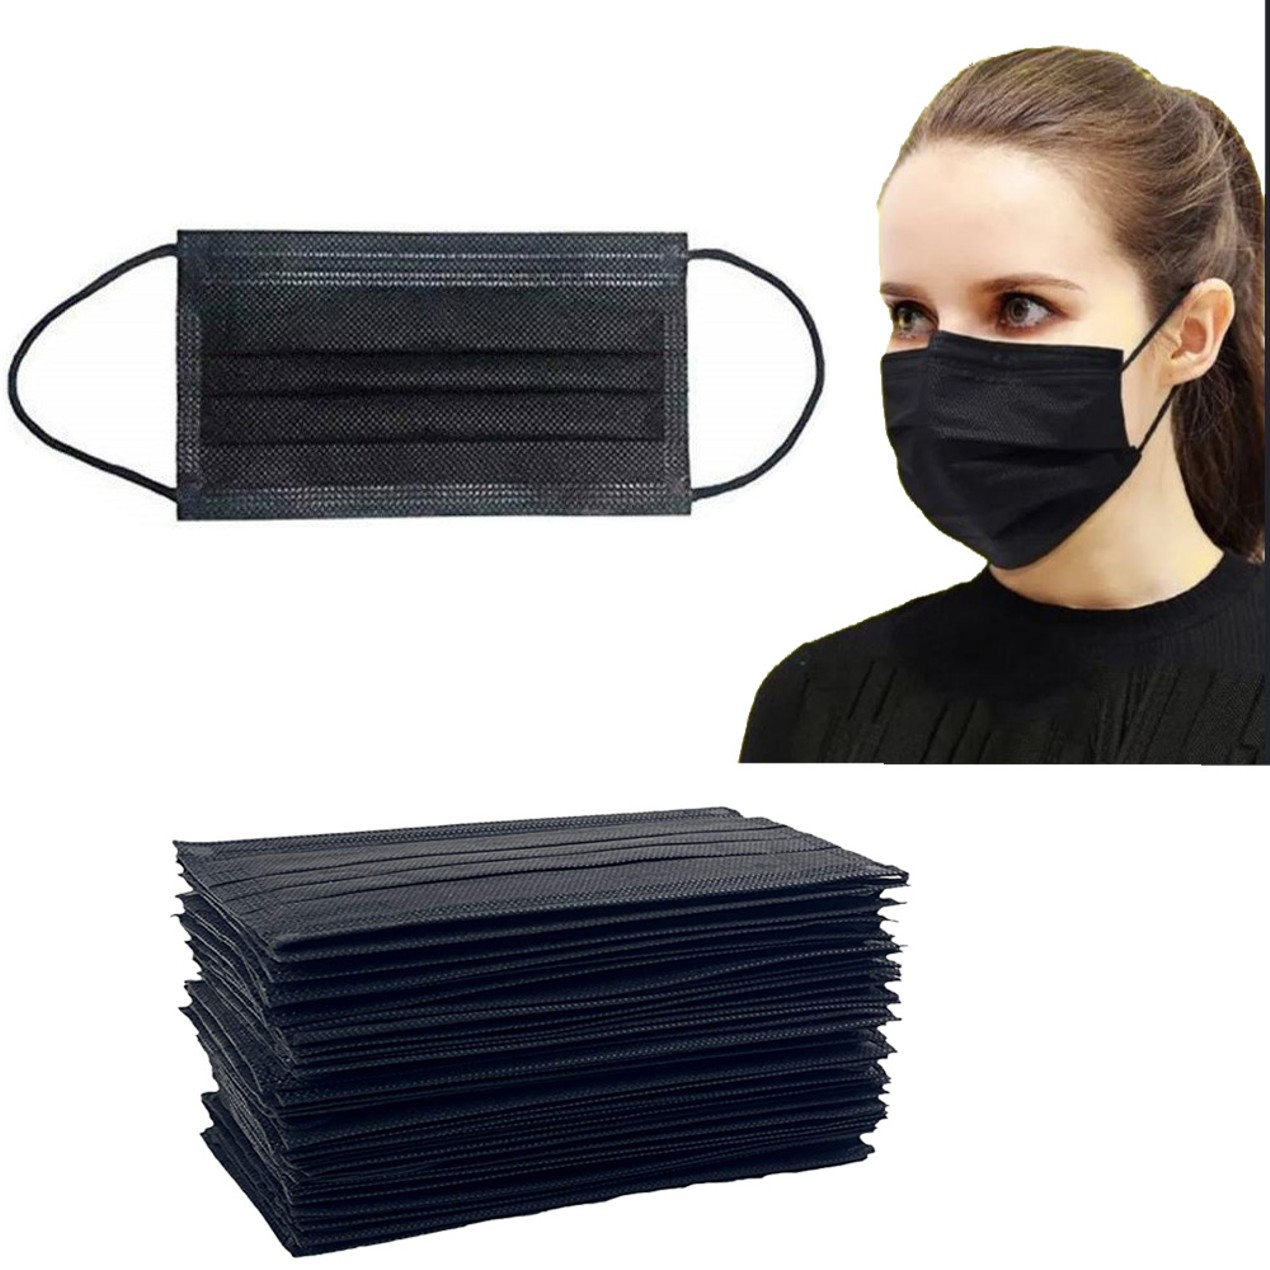 50-Pack Non-Medical Disposable 3-Ply Black Face Masks